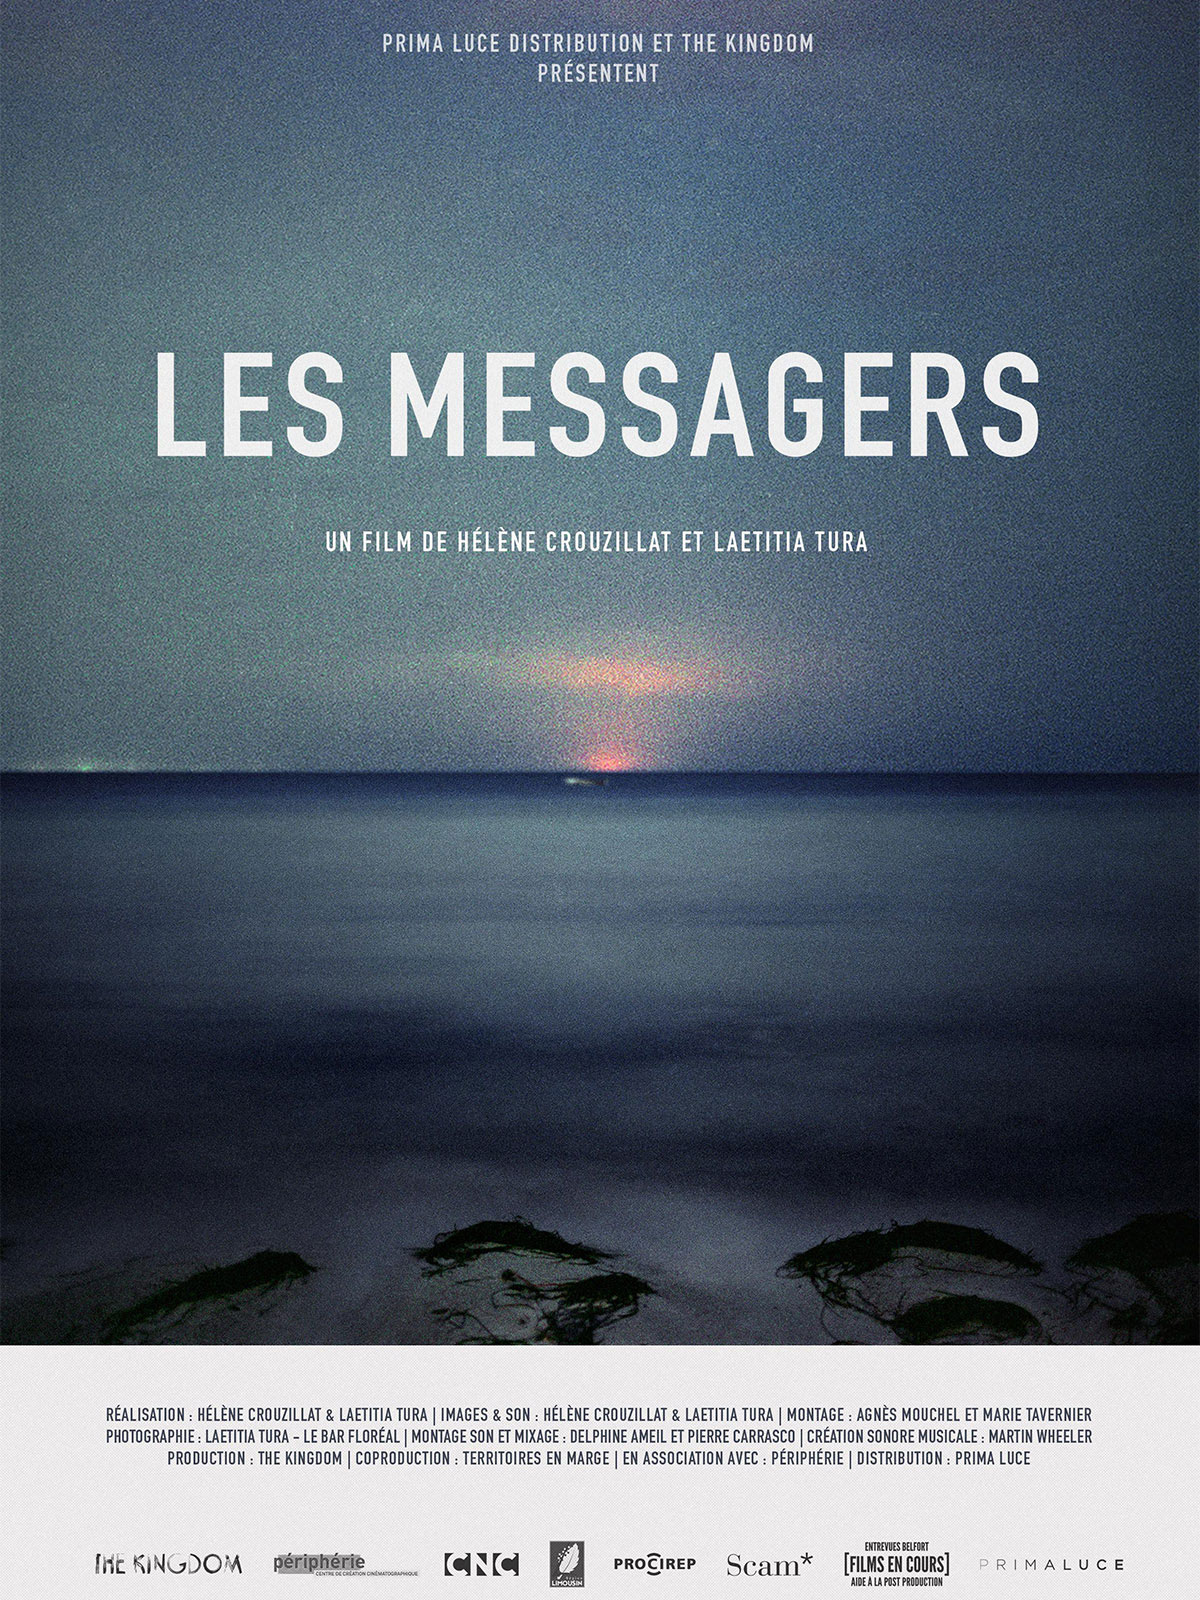 Les-messagers